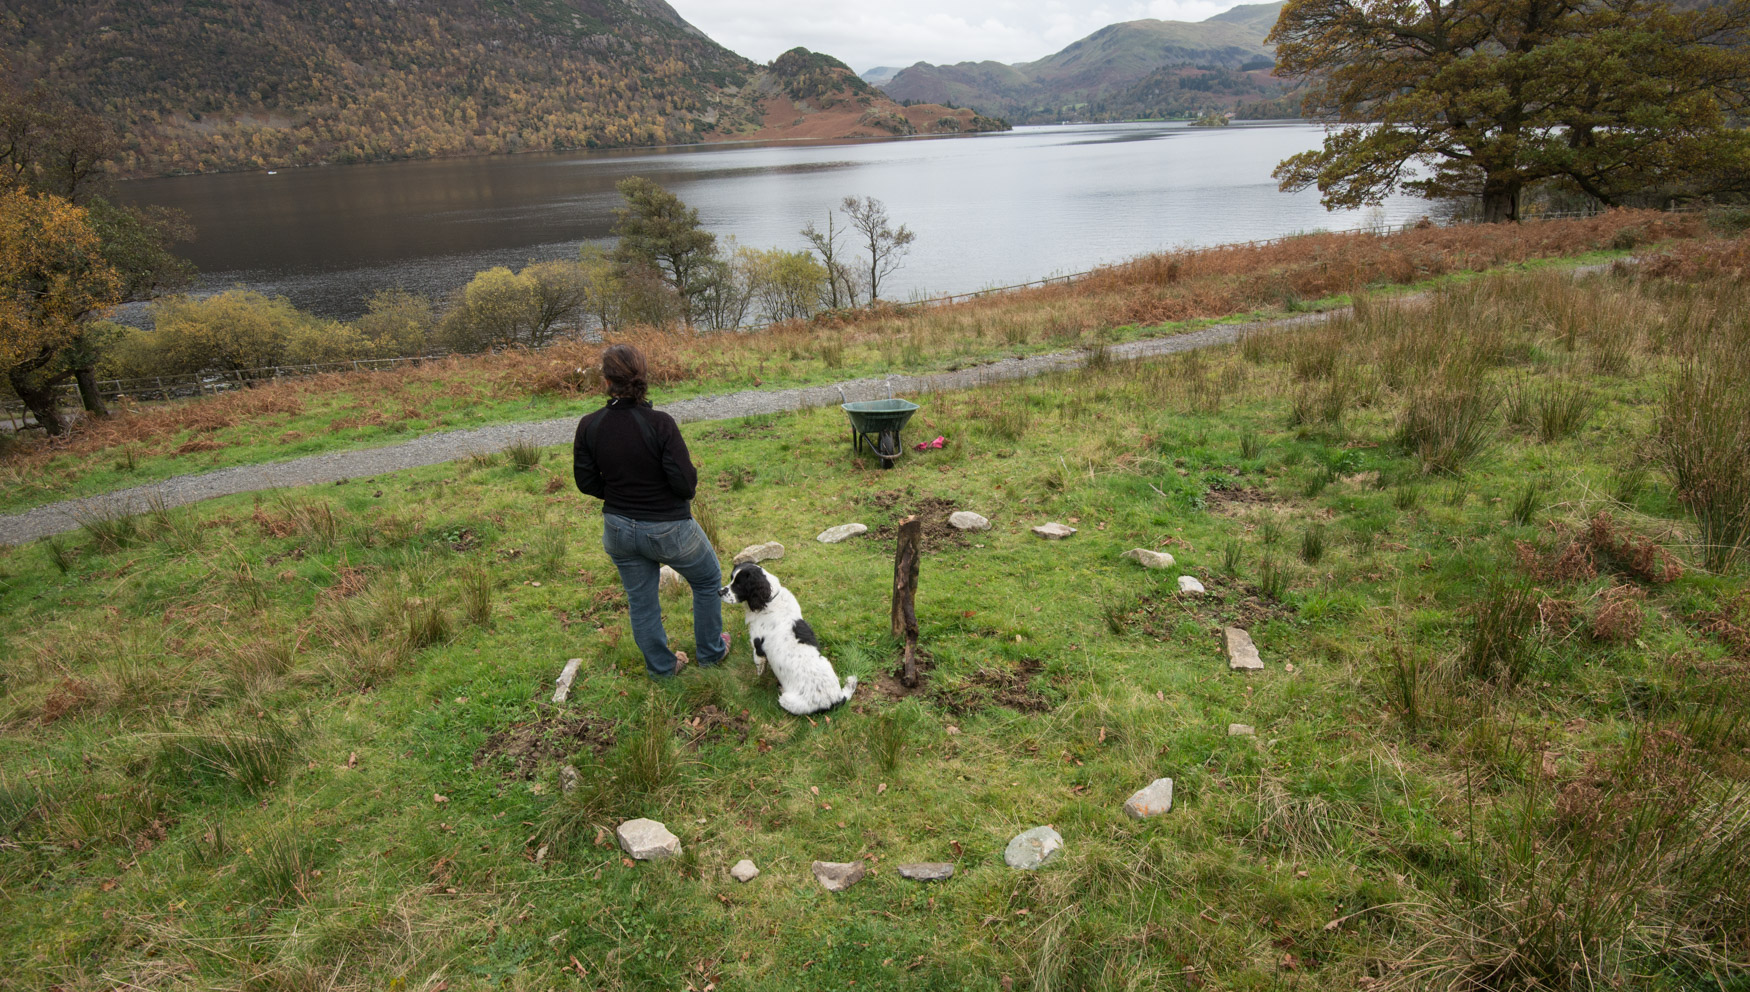 Site of treefold:north before the build, Glencoyne Park